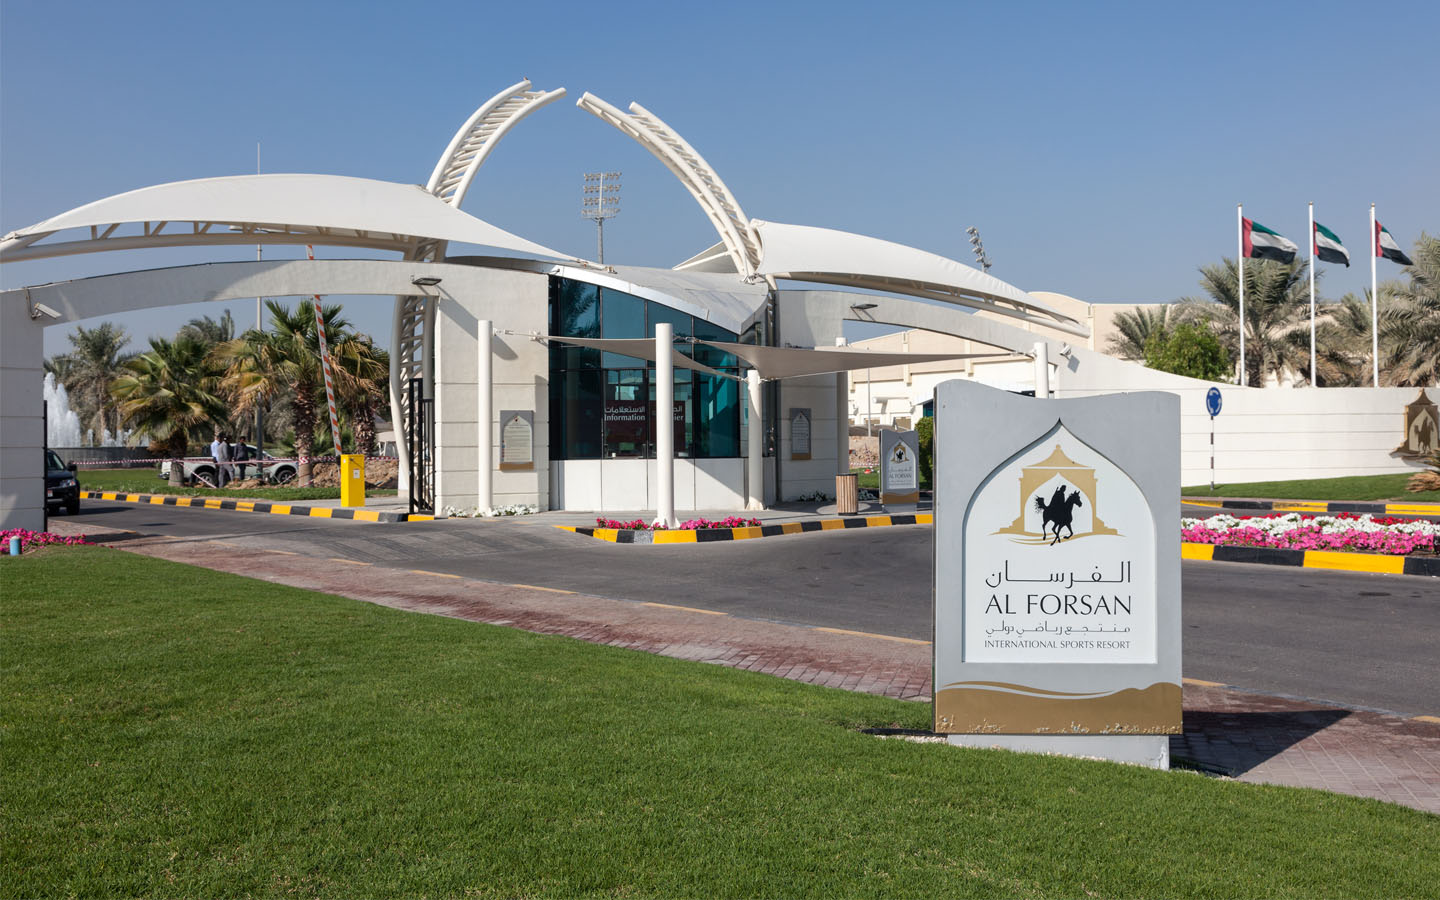 Al Forsan Internal Sports Resort is a place where you can try horse-racing, shooting, golf and more.